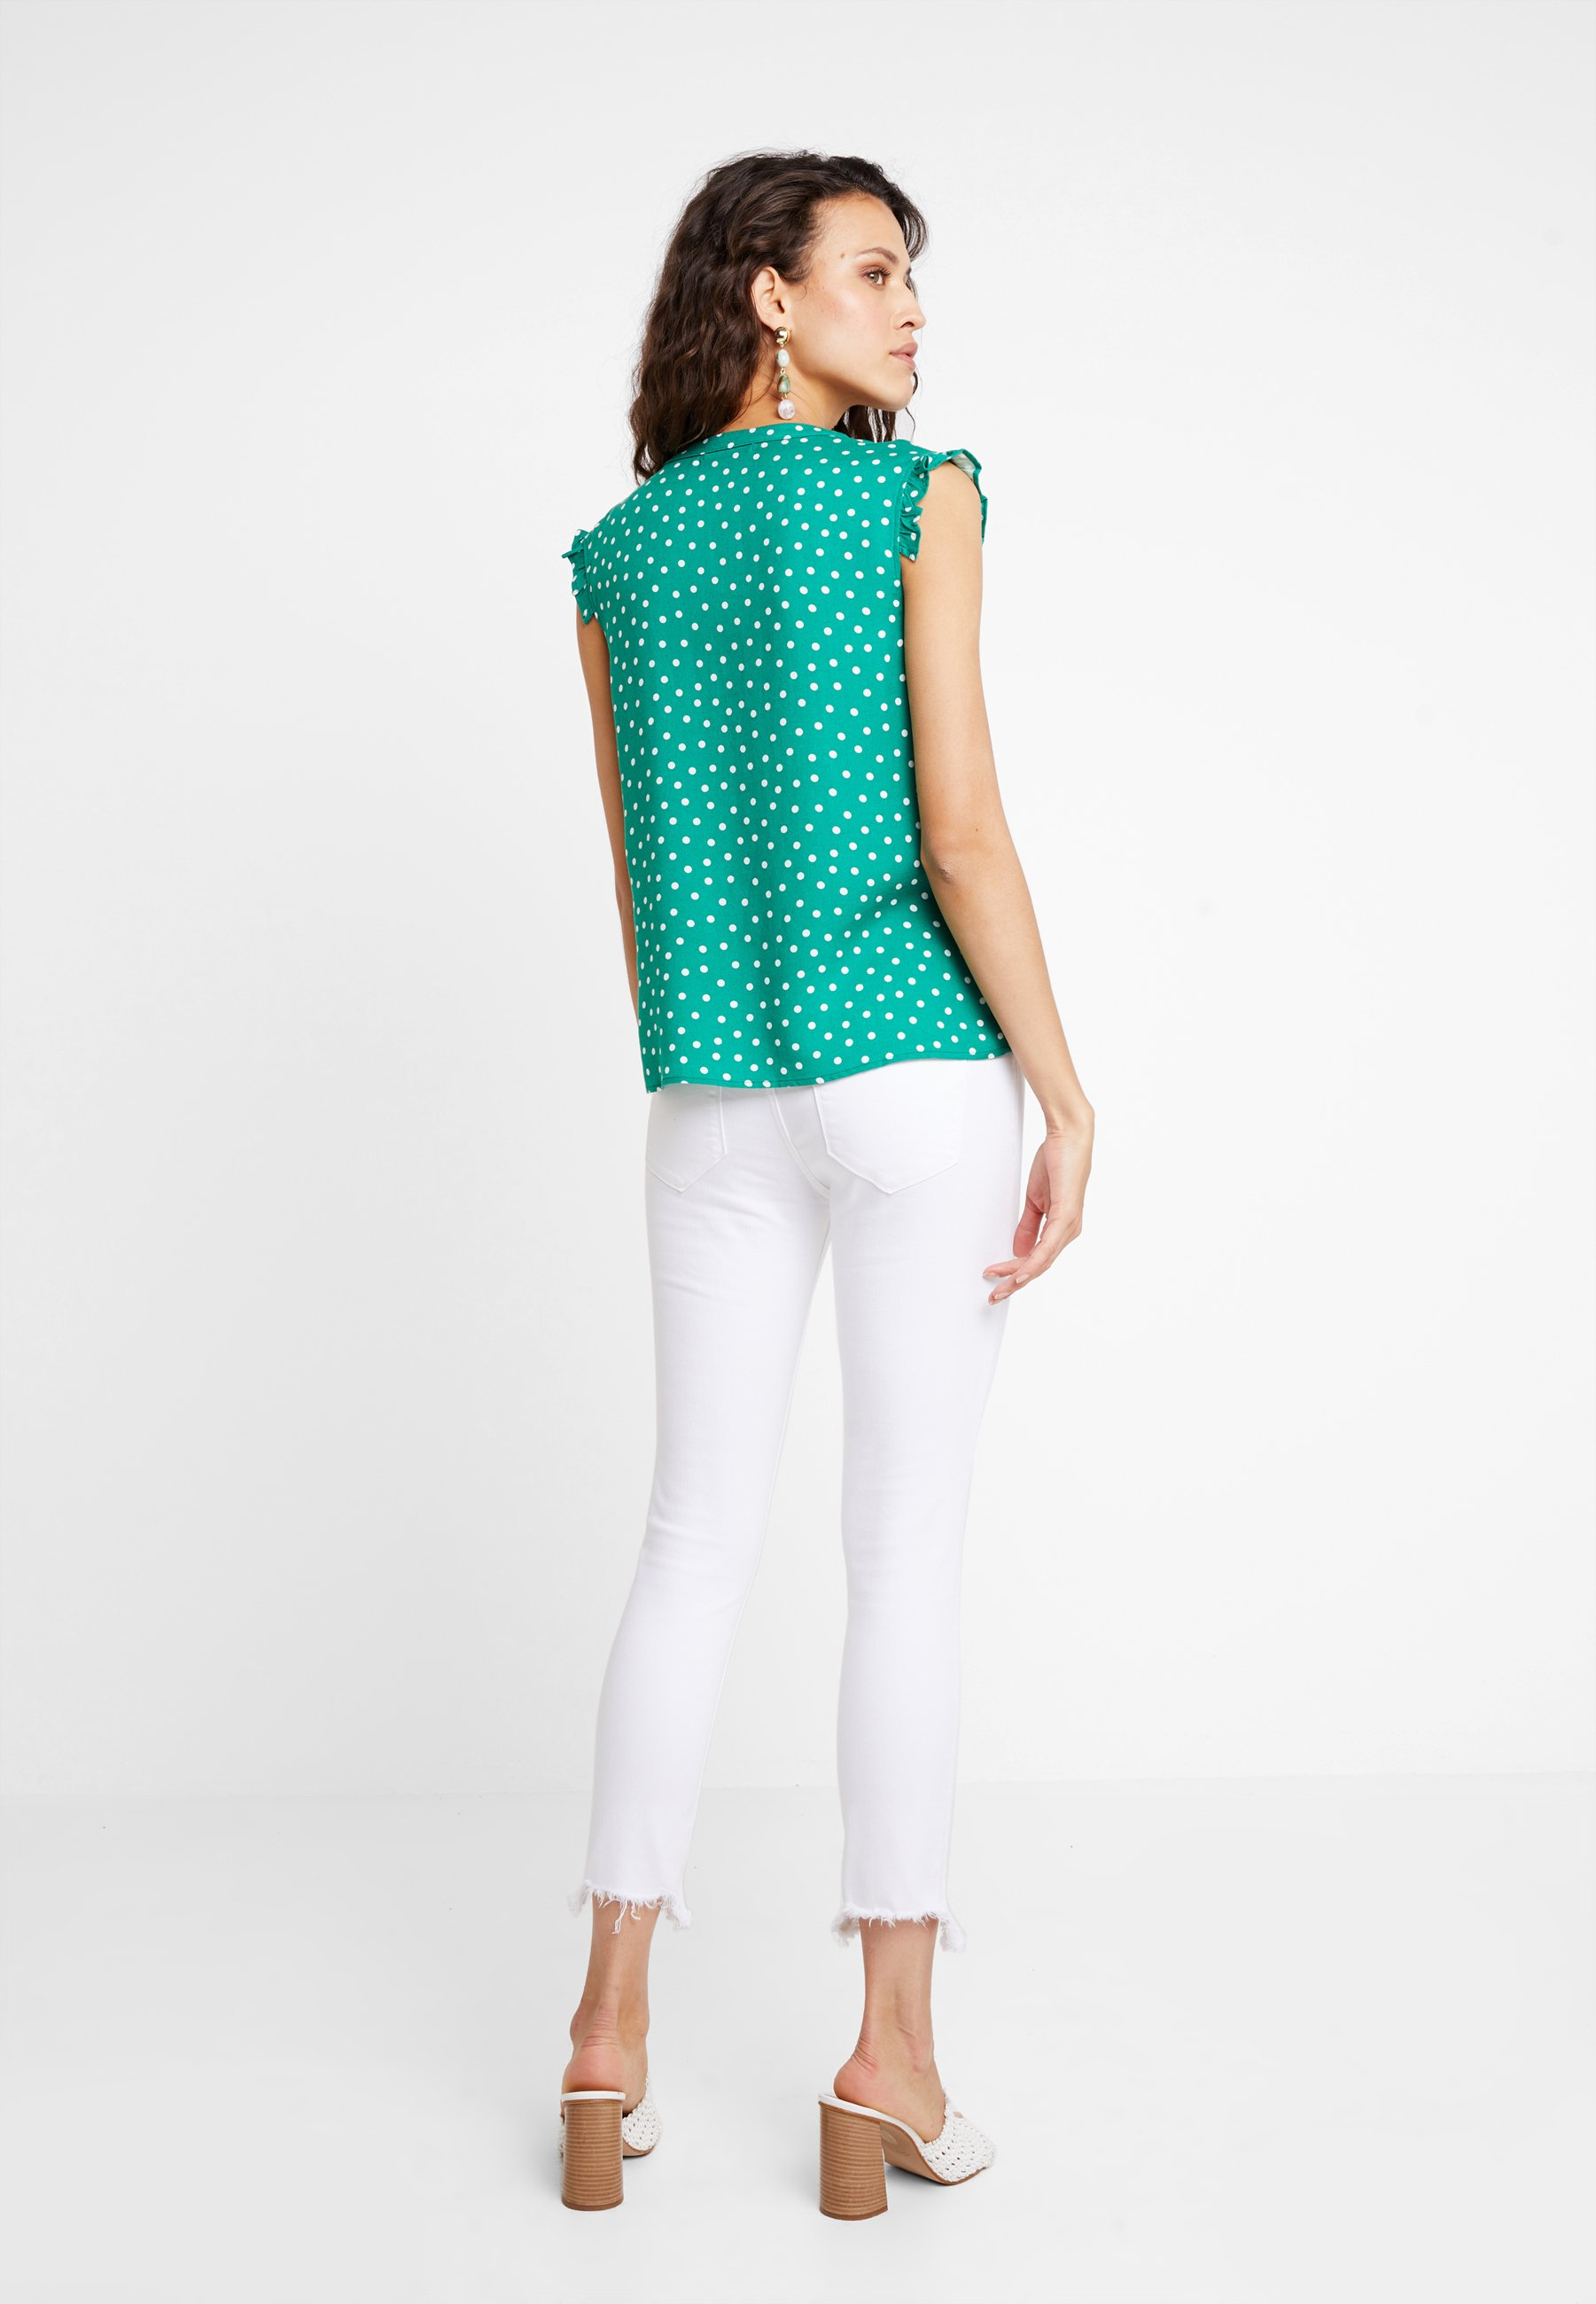 green mint green Blouse amp;berry amp;berry green white mint Blouse white amp;berry mint Blouse BdQCeEoWrx